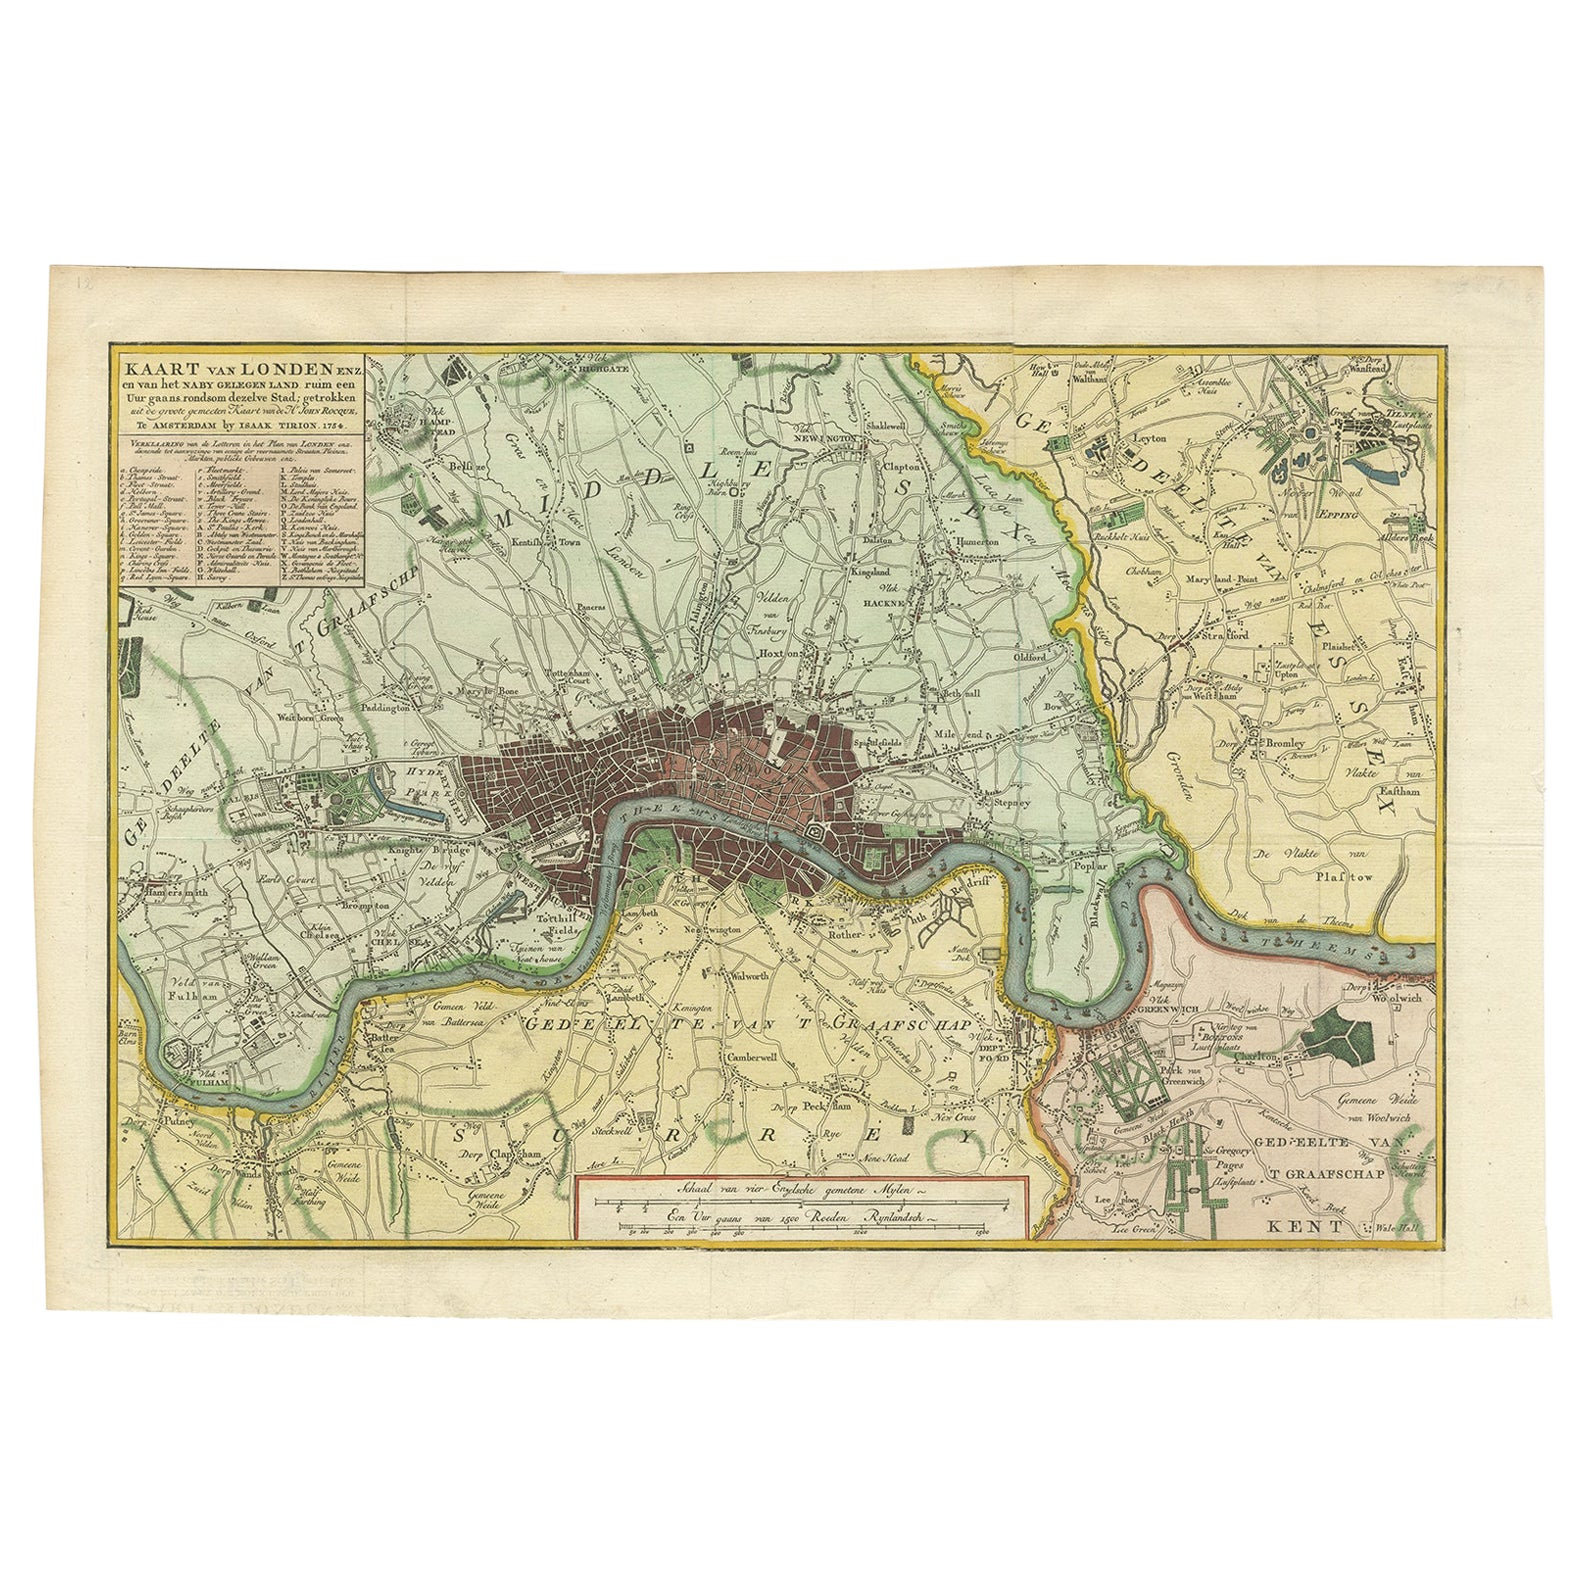 Antique Map of London by Tirion '1754'